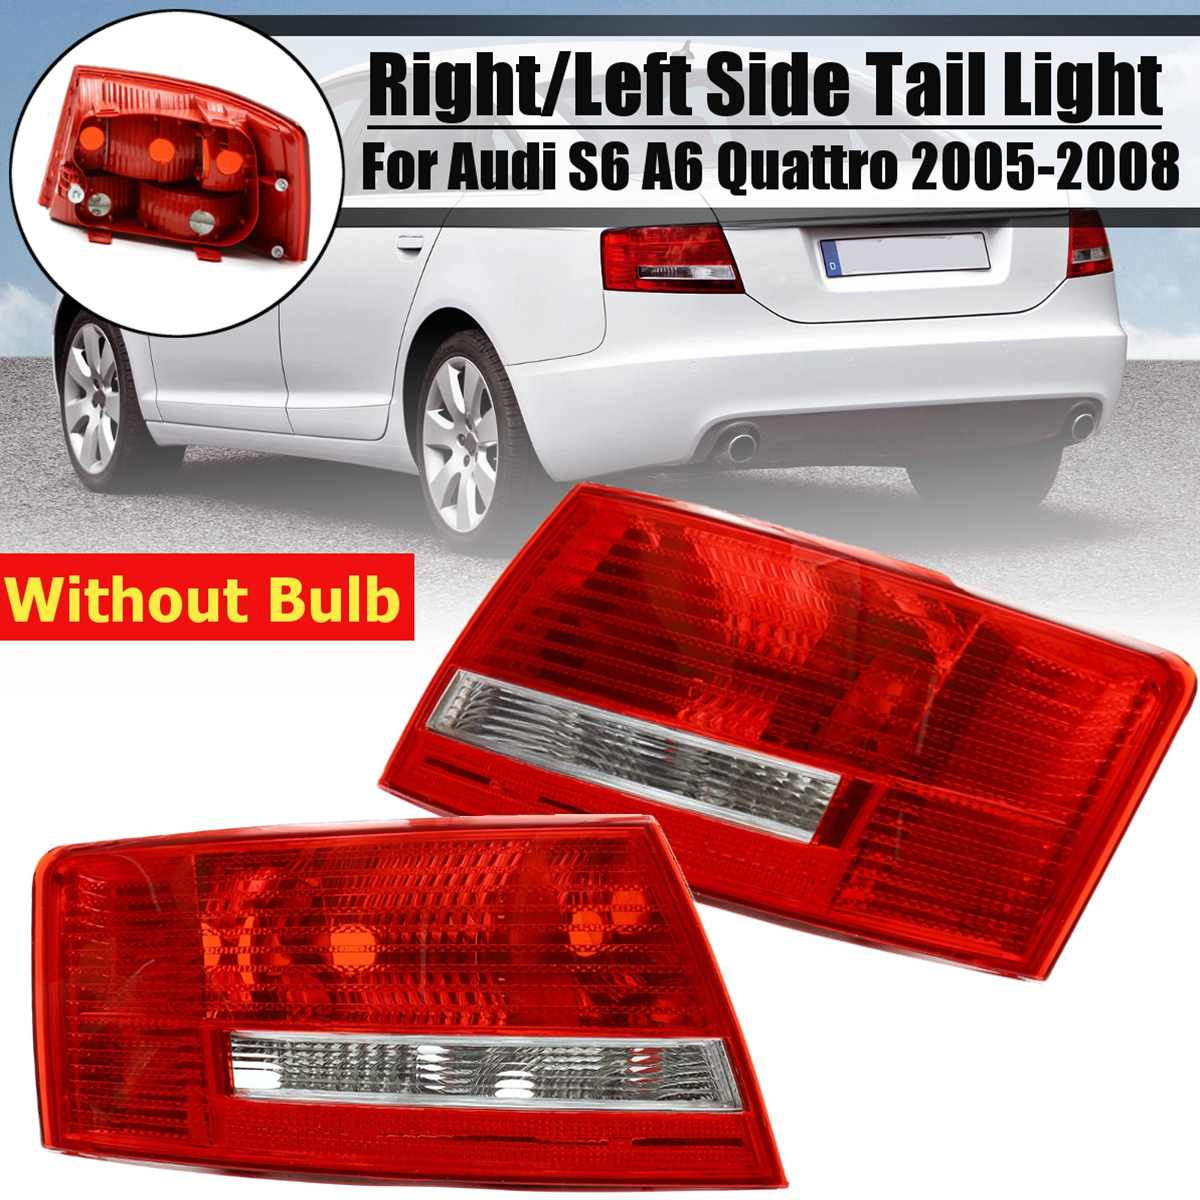 Tail-Lamp-Light A6 S6 2006 2005 Rear Audi Quattro 4B5 2007 Right/left 2008 for No-Wire